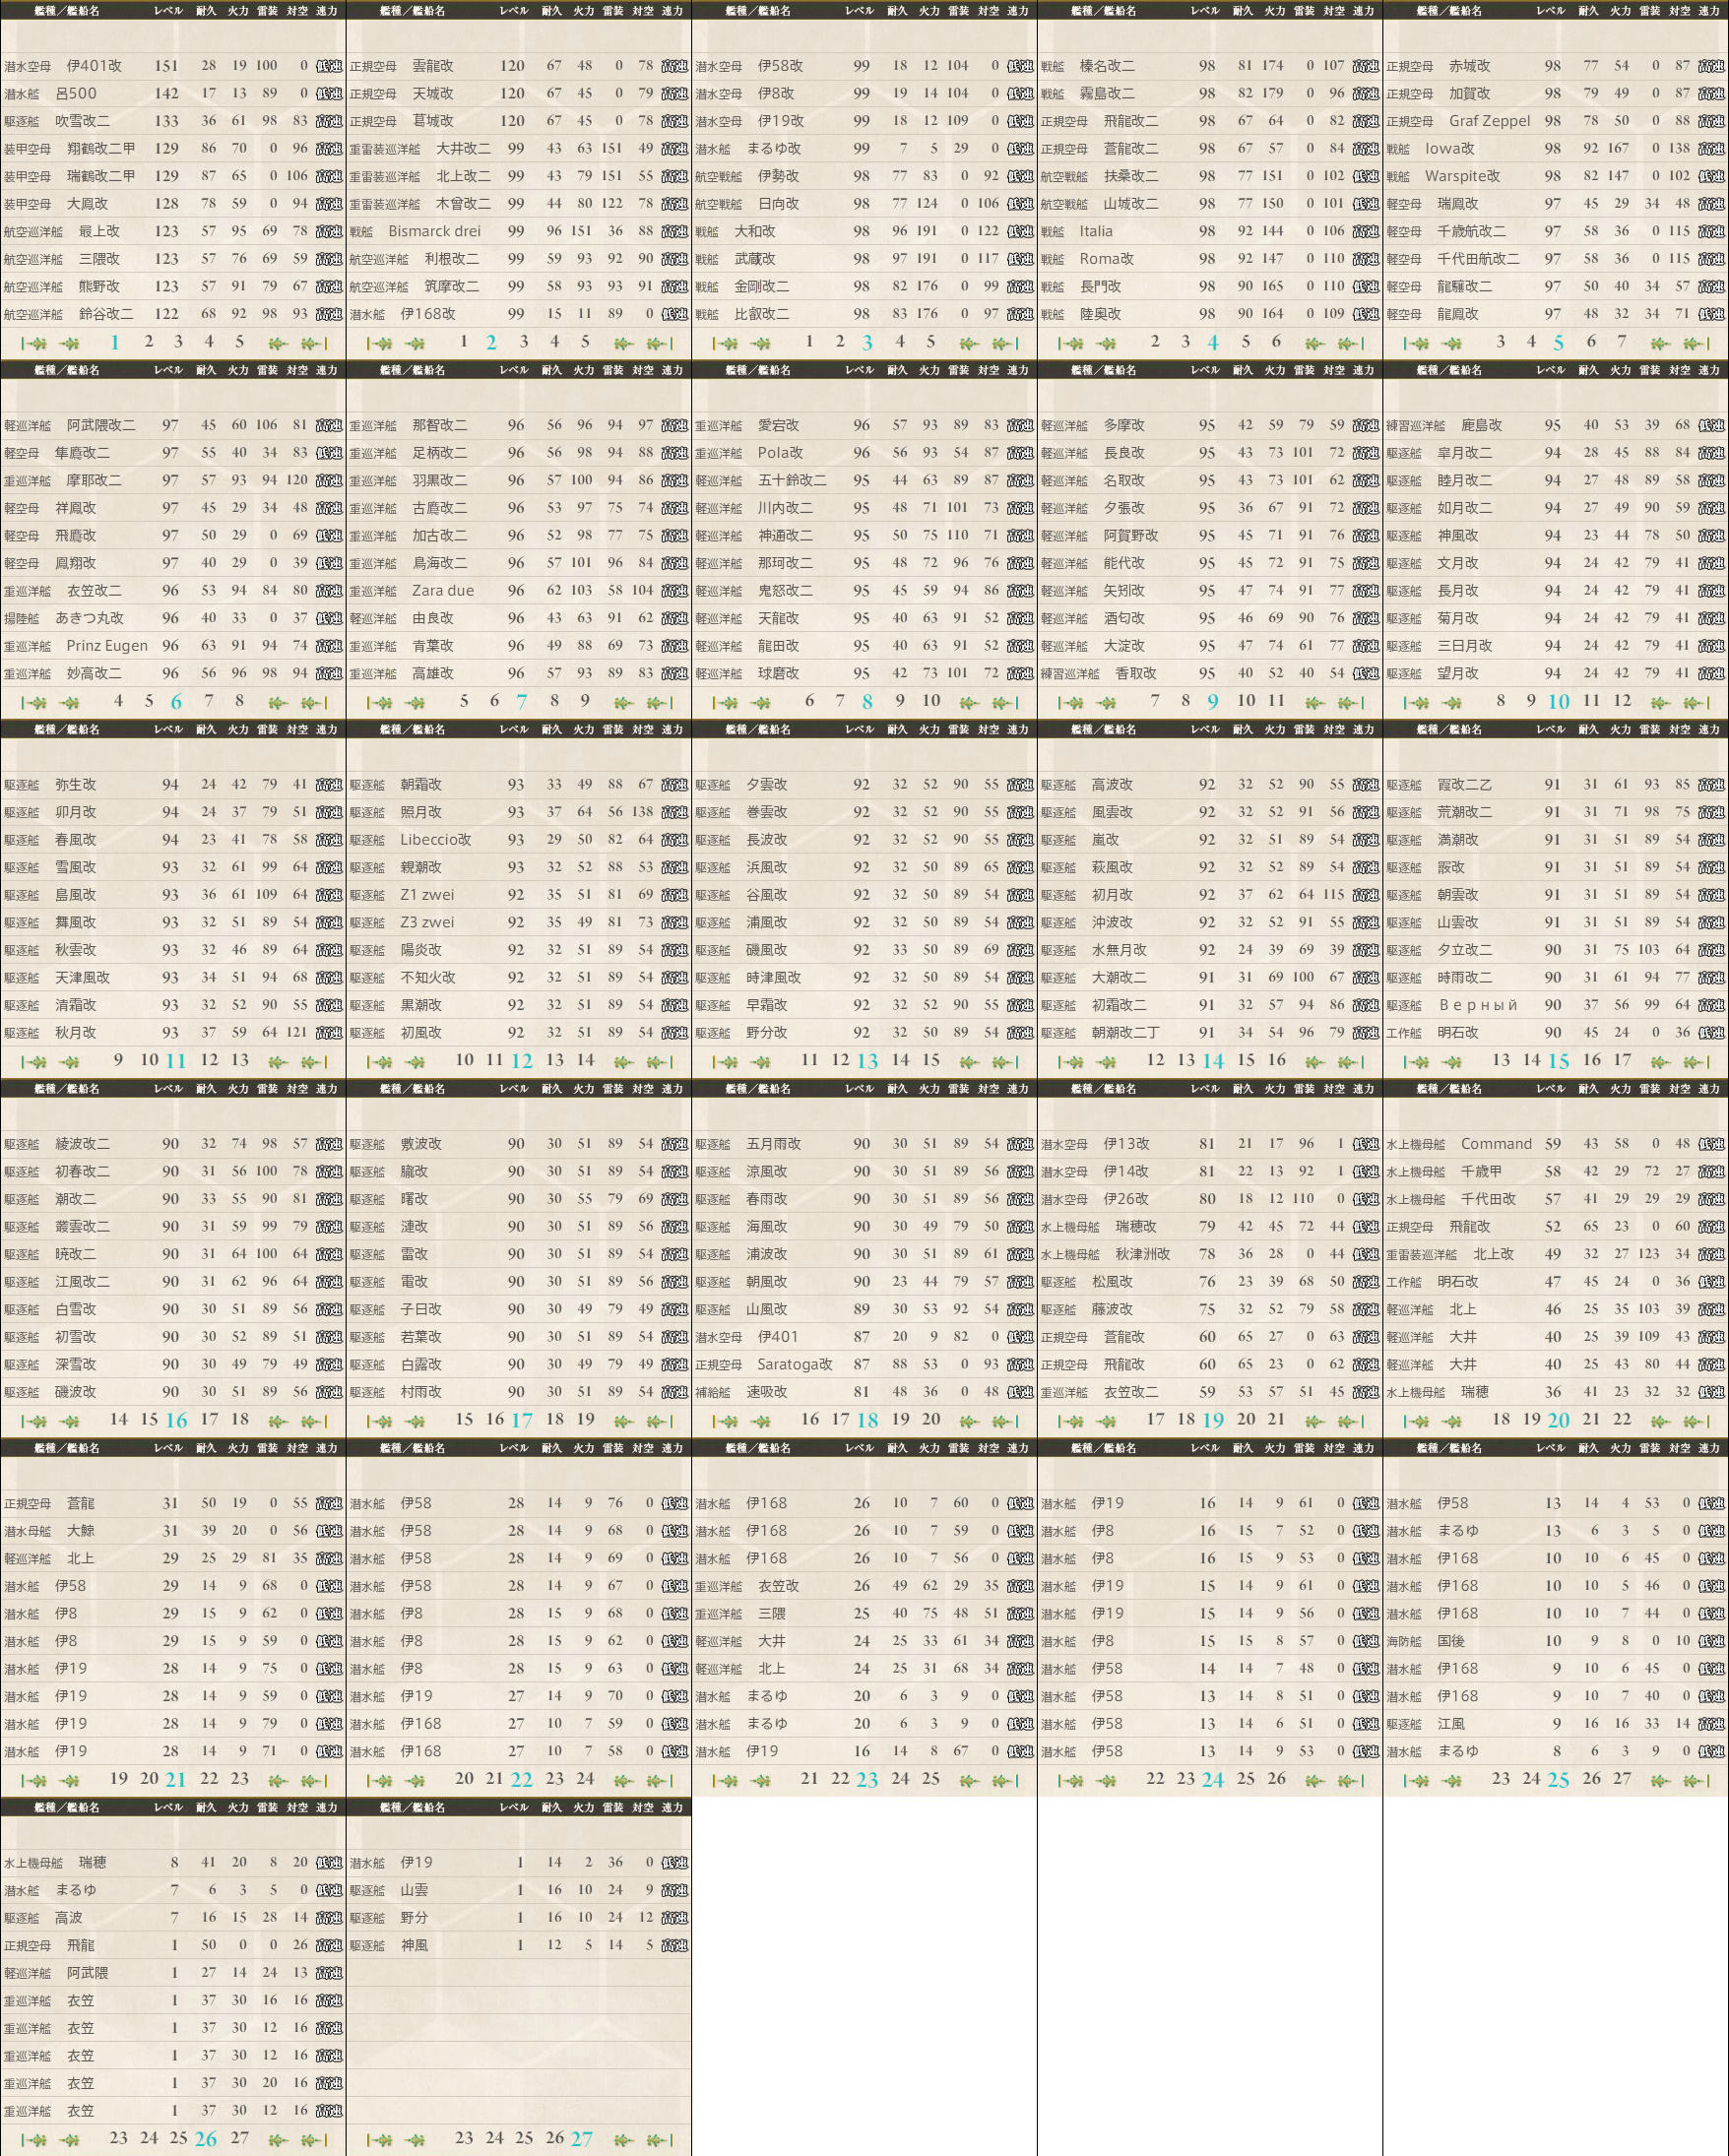 data.kancolle.levelsort.20170515.png